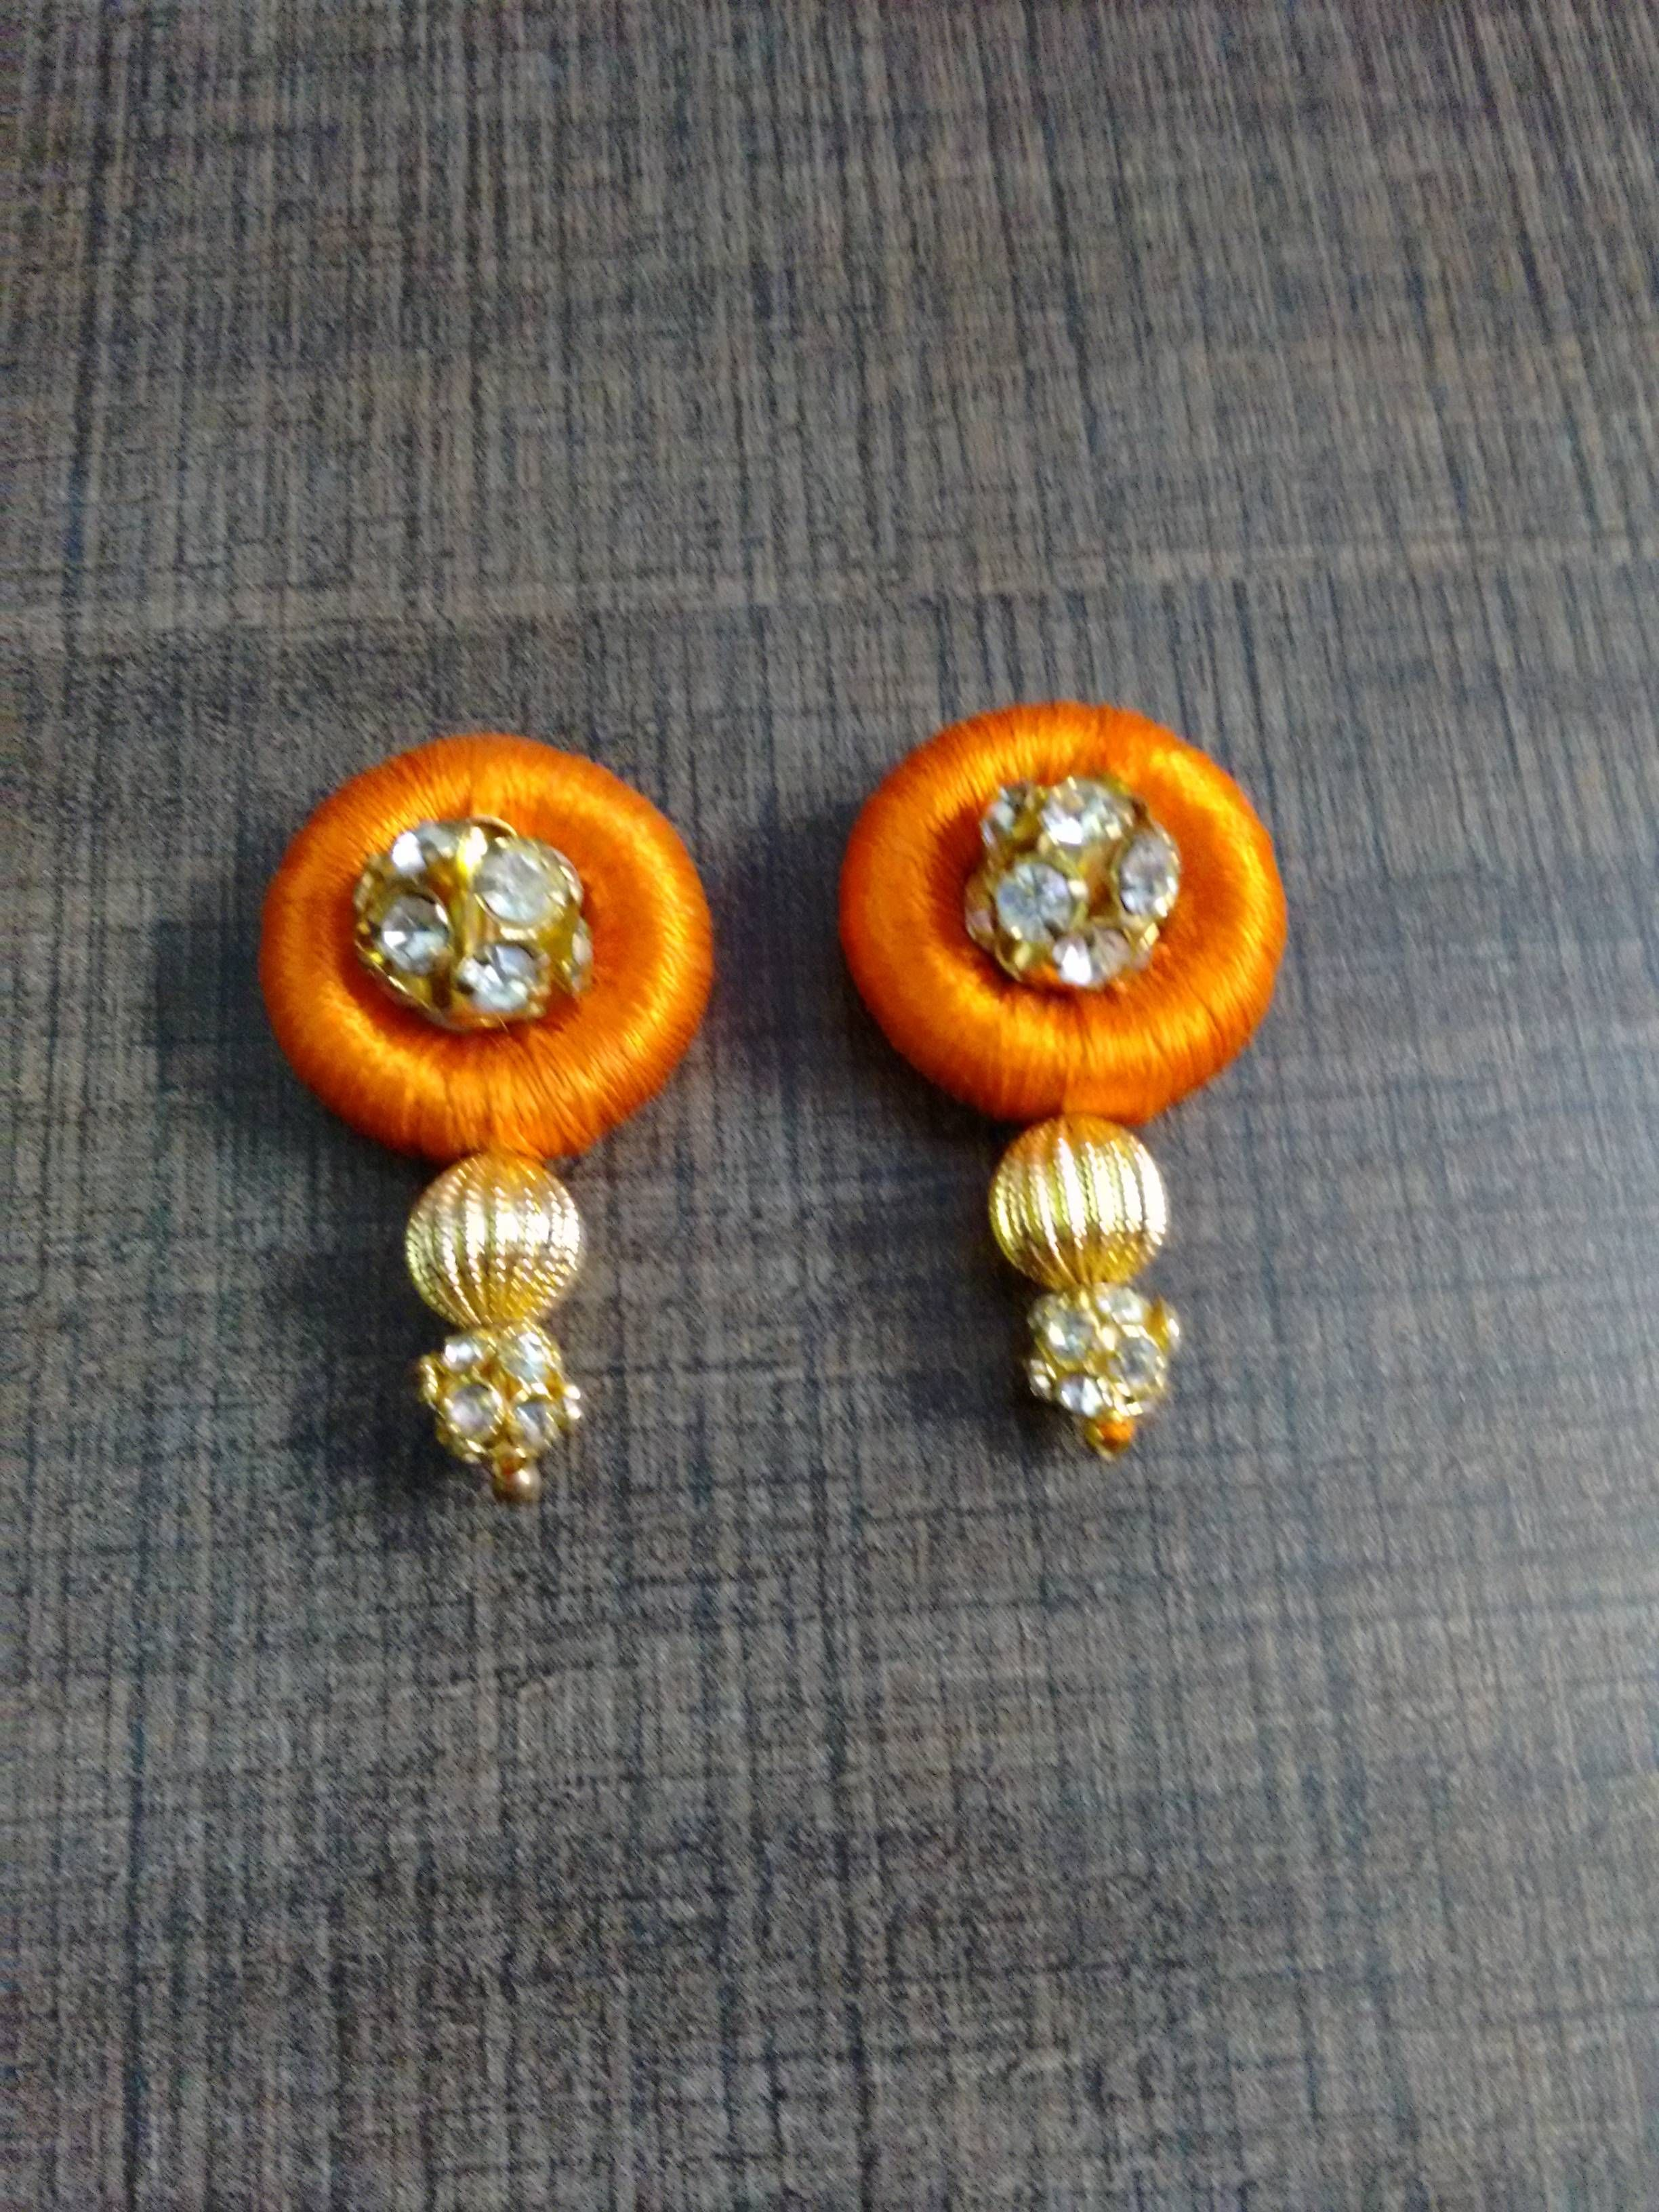 Silk Thread Jewelry hobby class in chennai | accessories ...